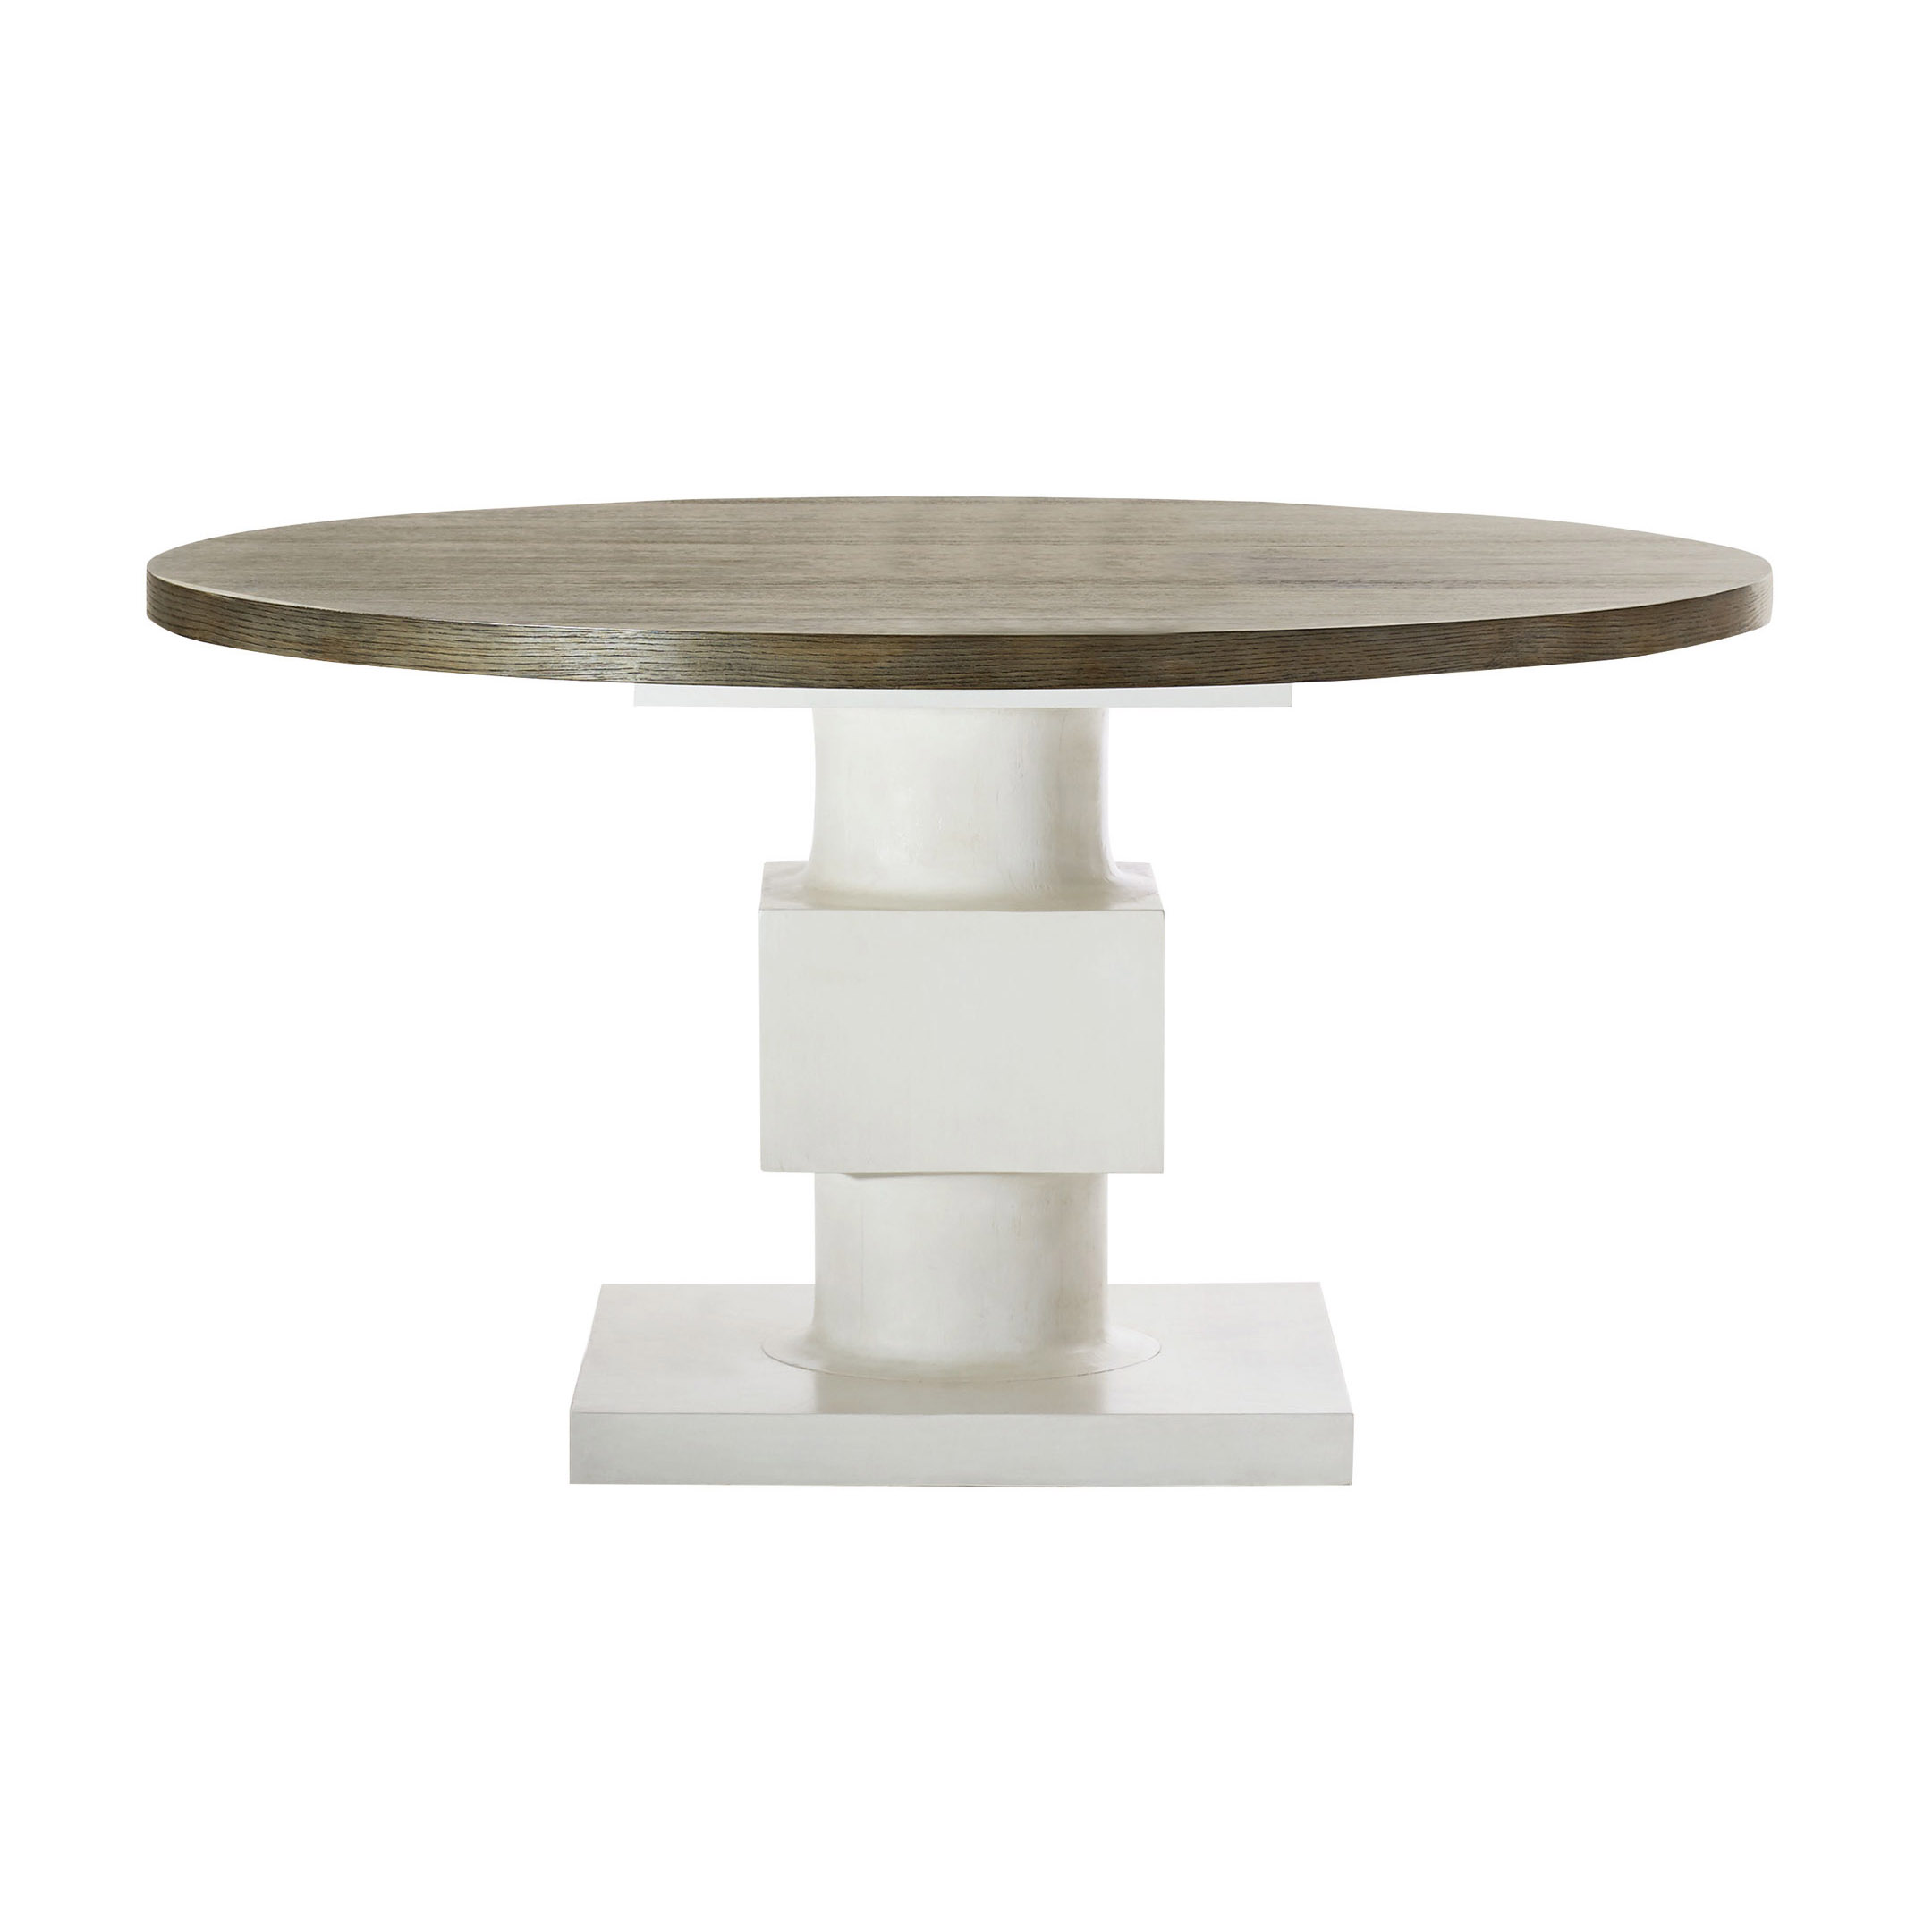 Newberry Round Dining Table.jpg